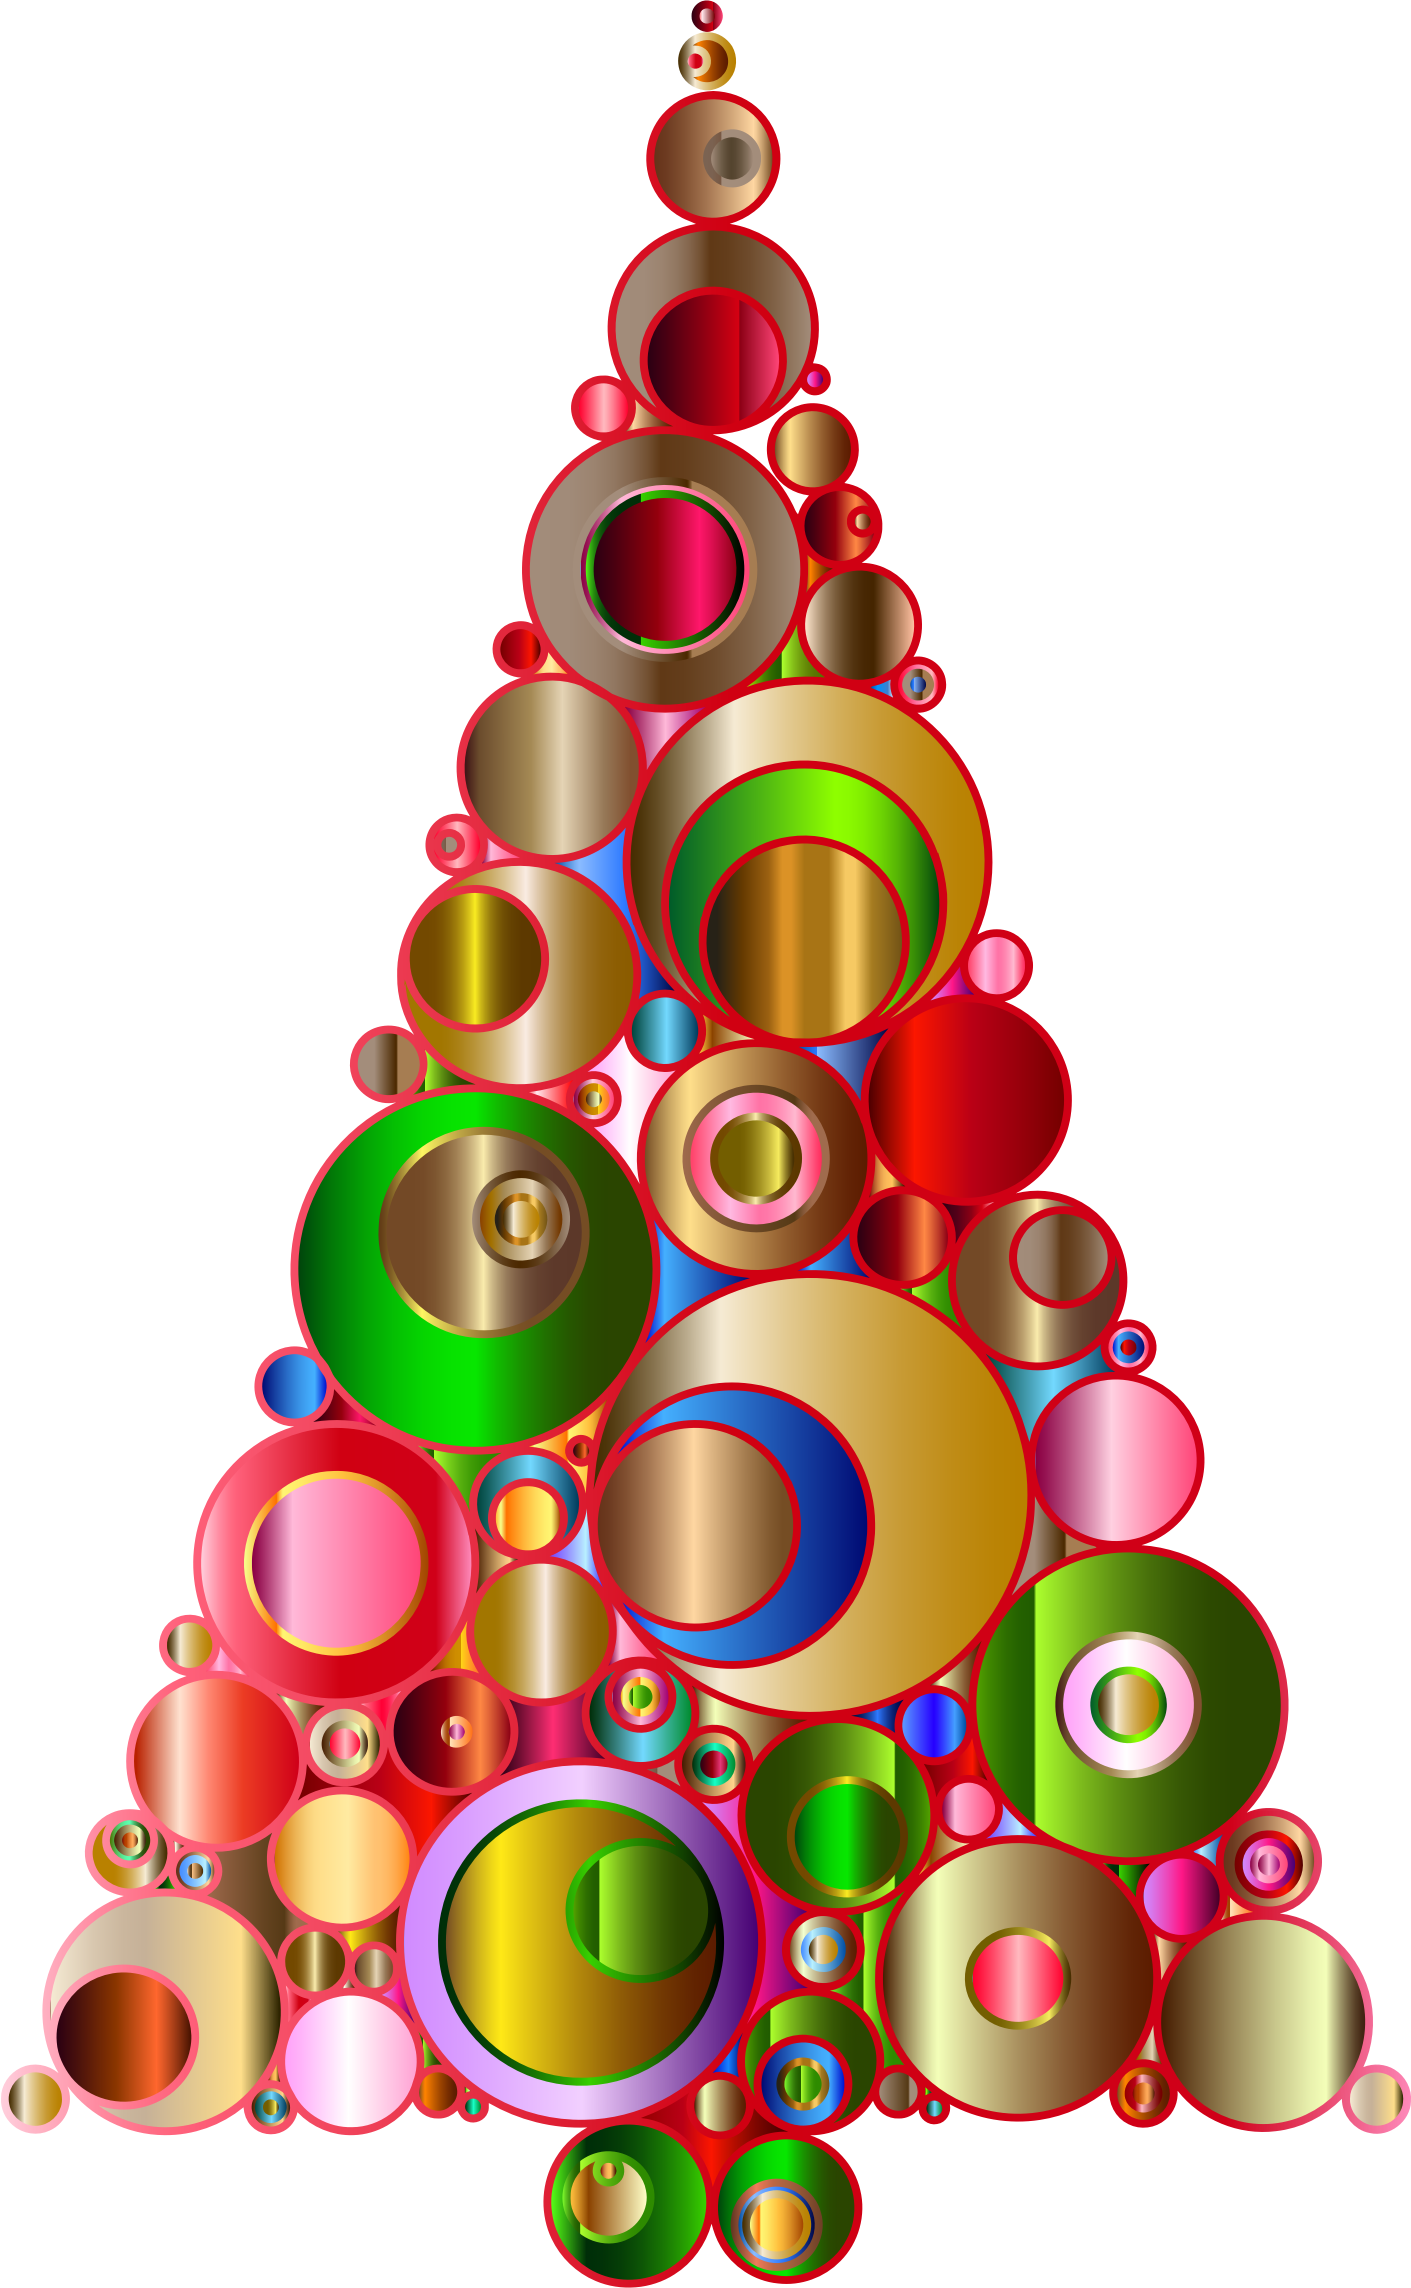 Abstract christmas tree clipart image black and white Clipart - Colorful Abstract Circles Christmas Tree 2 image black and white